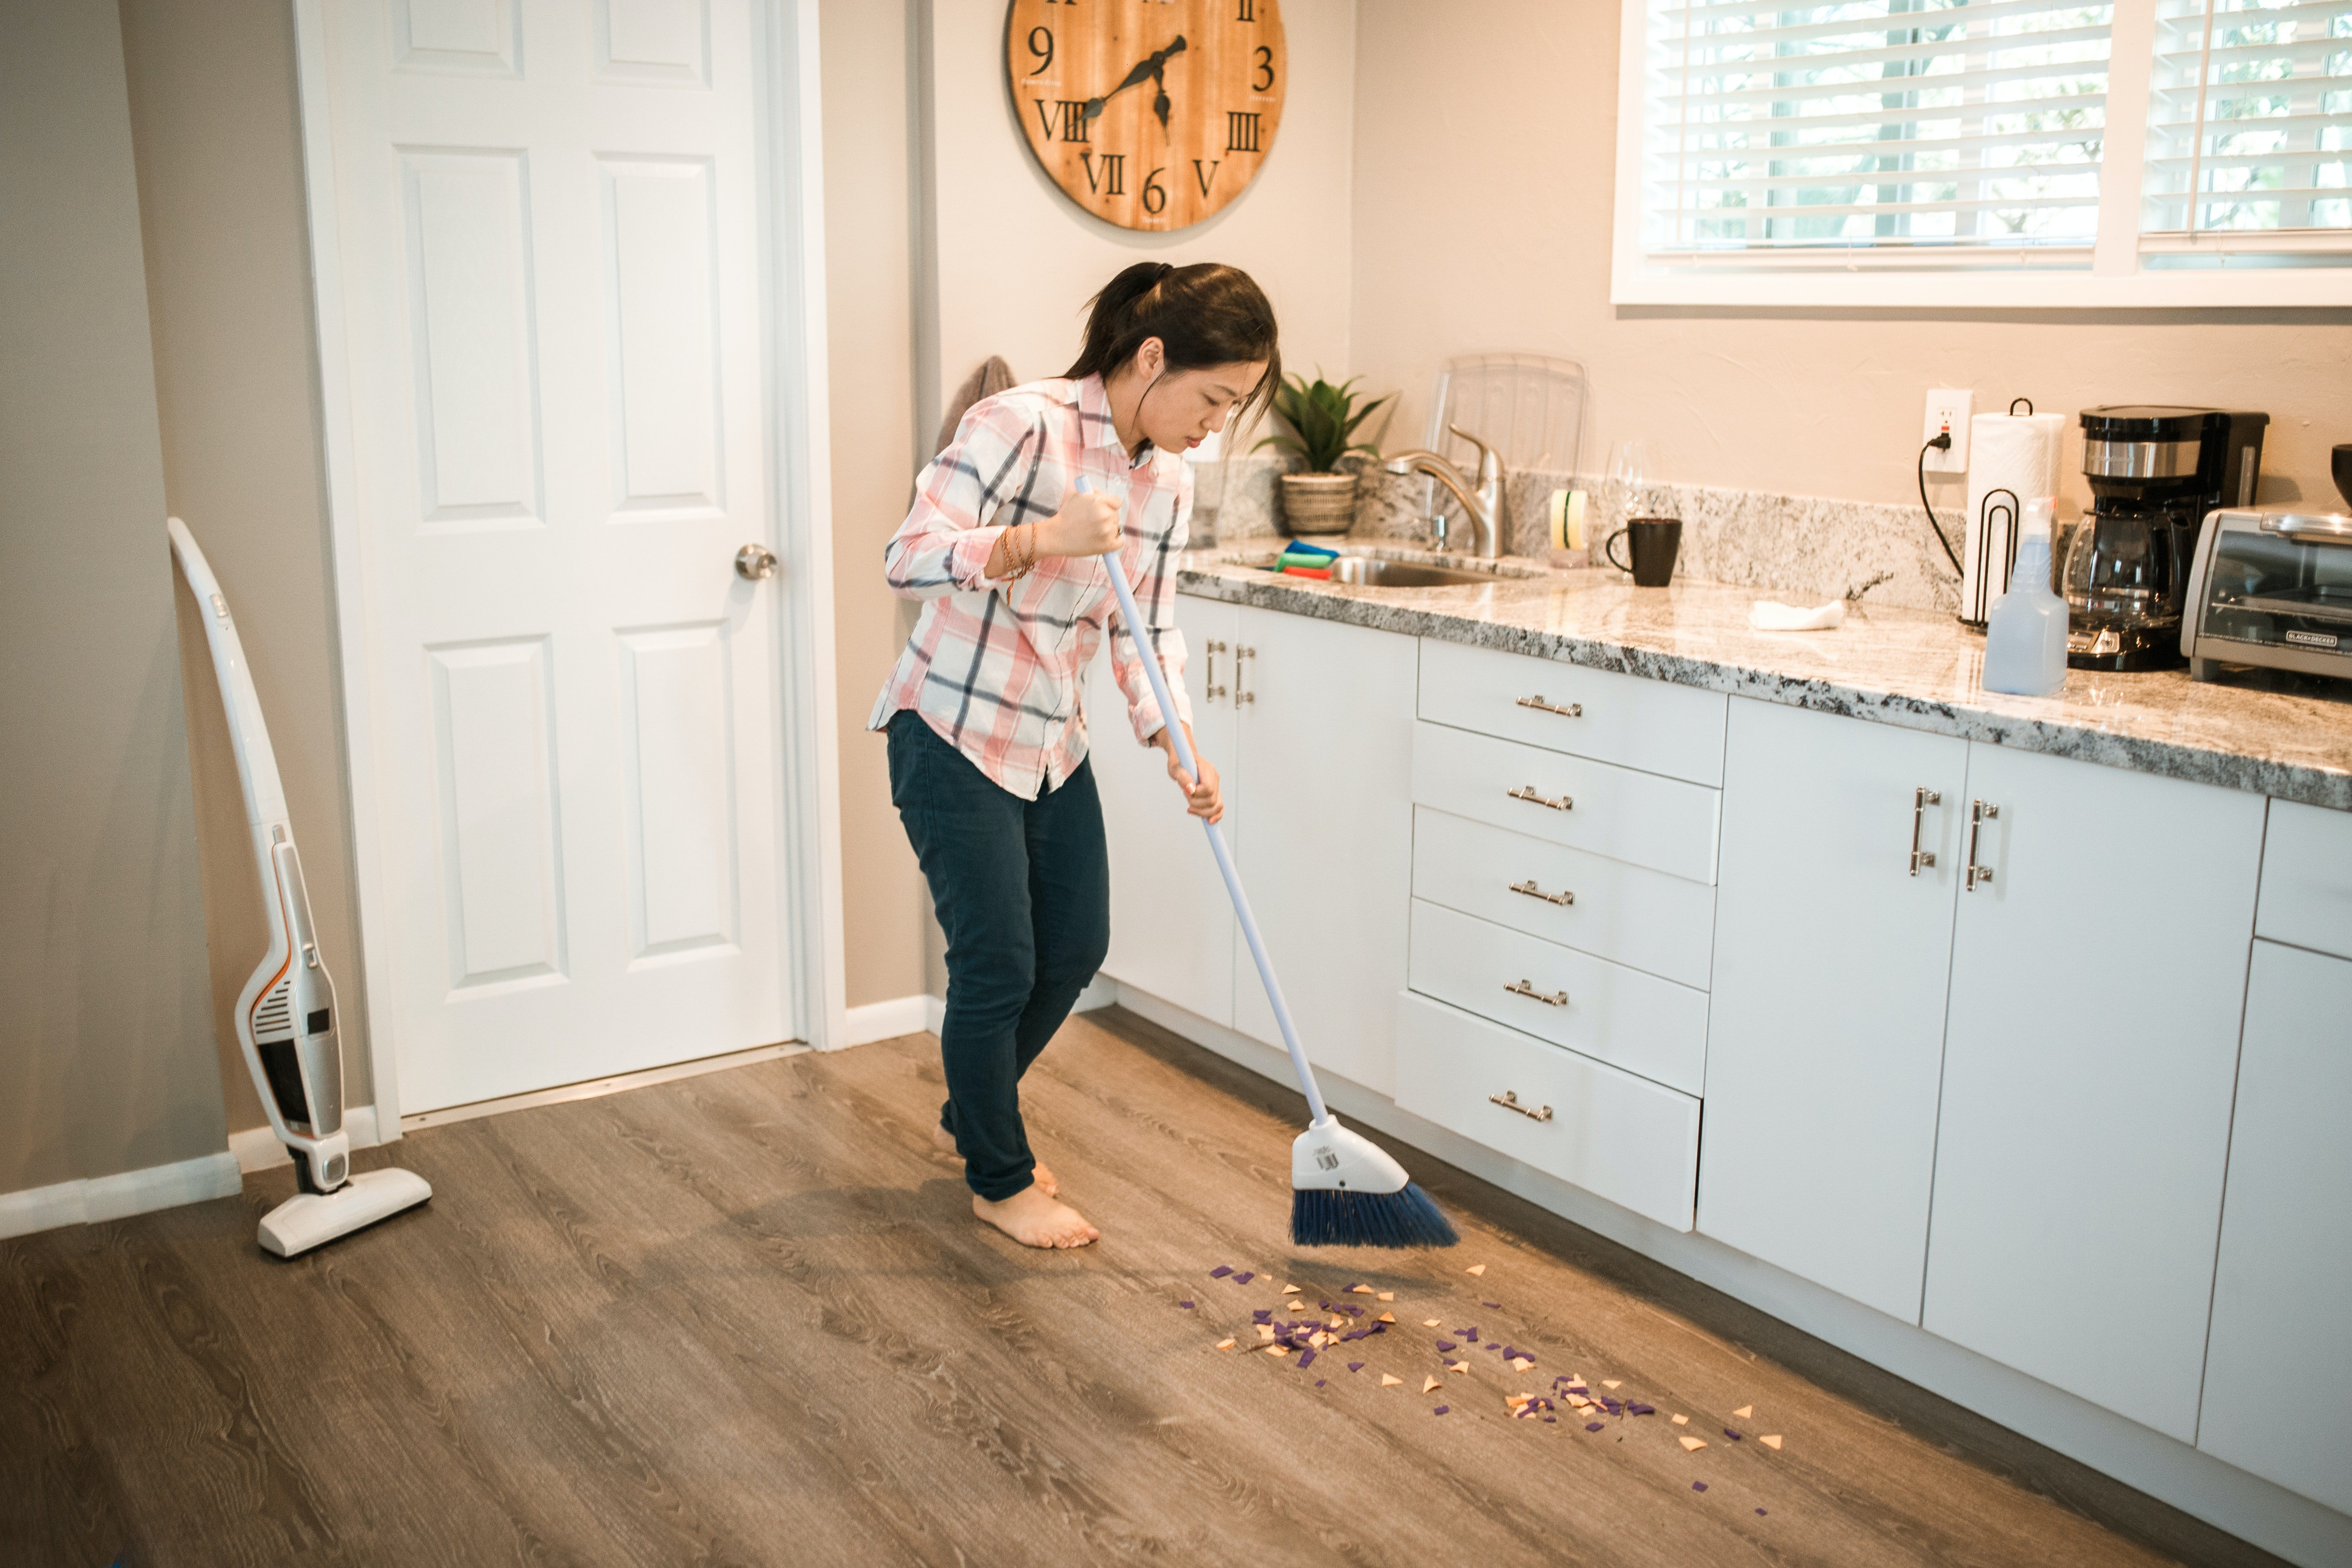 I began helping Stephany with the cleaning   Photo: Pexels